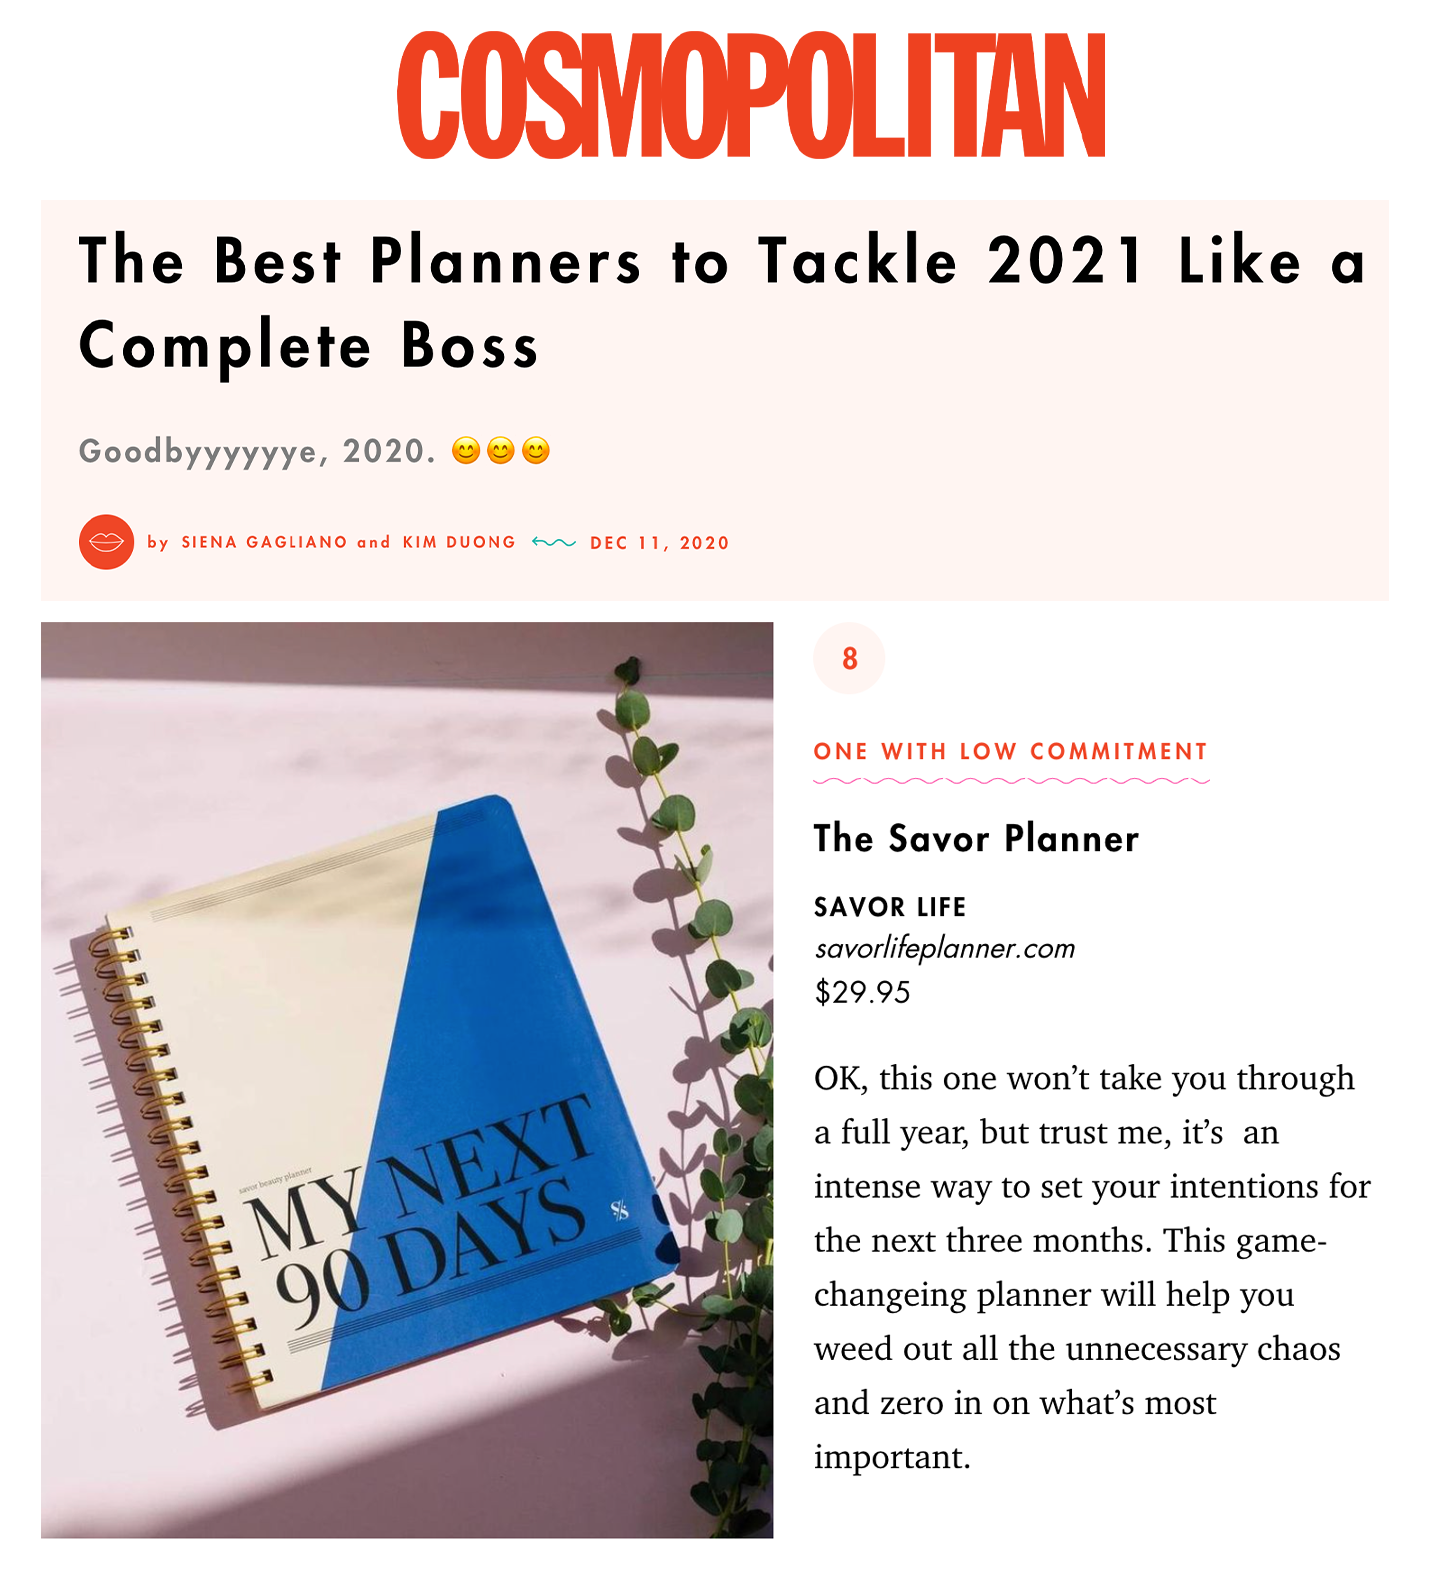 Cosmopolitan: The Best Planners to Tackle 2021